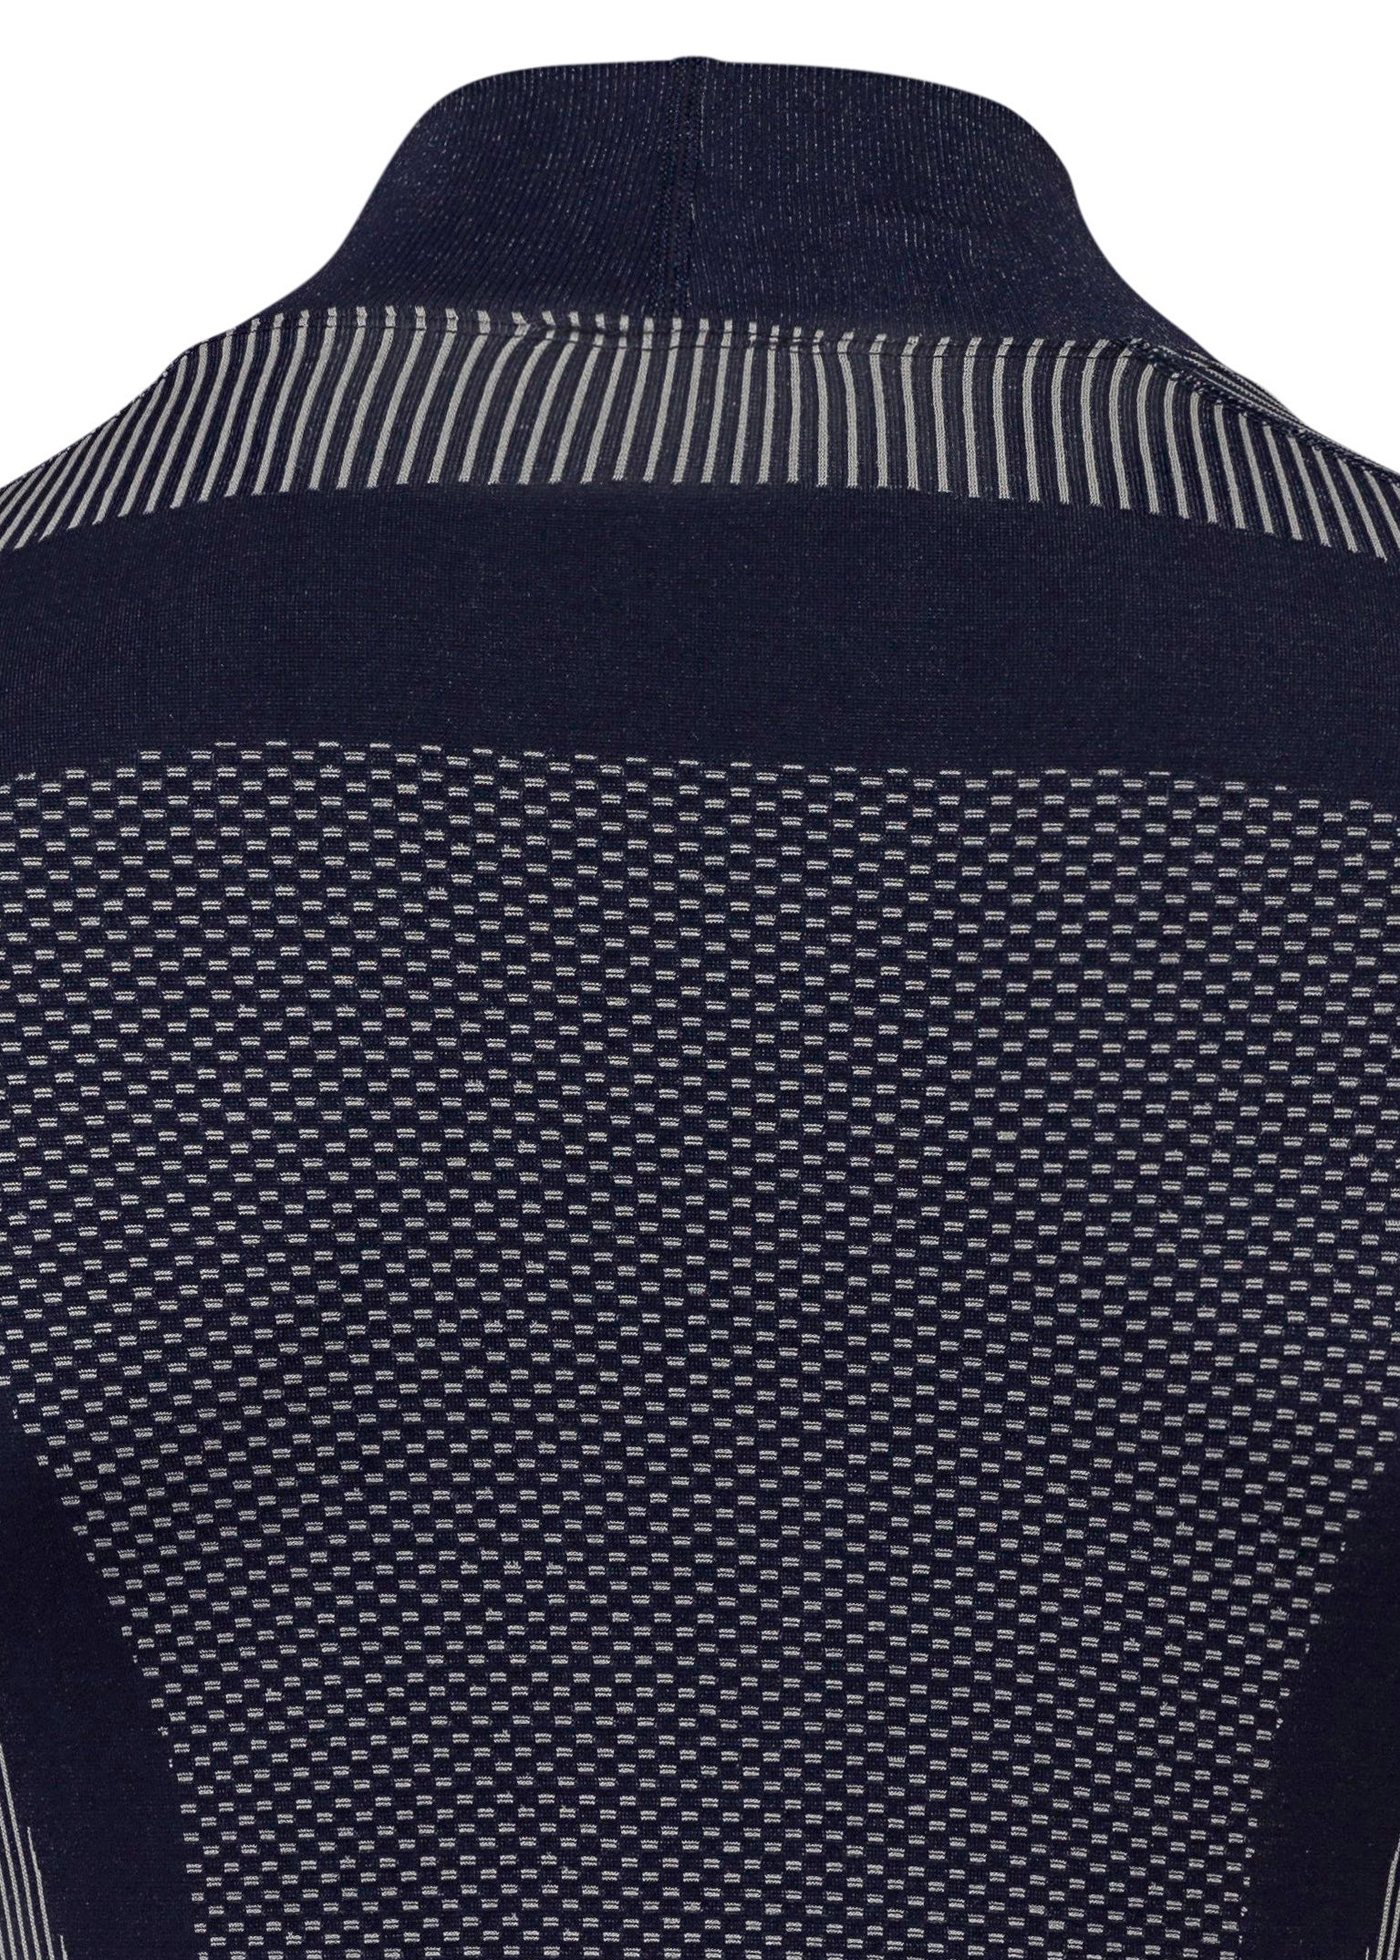 SPORT ACTIVE CLASSIC LONGSLEEVE image number 3